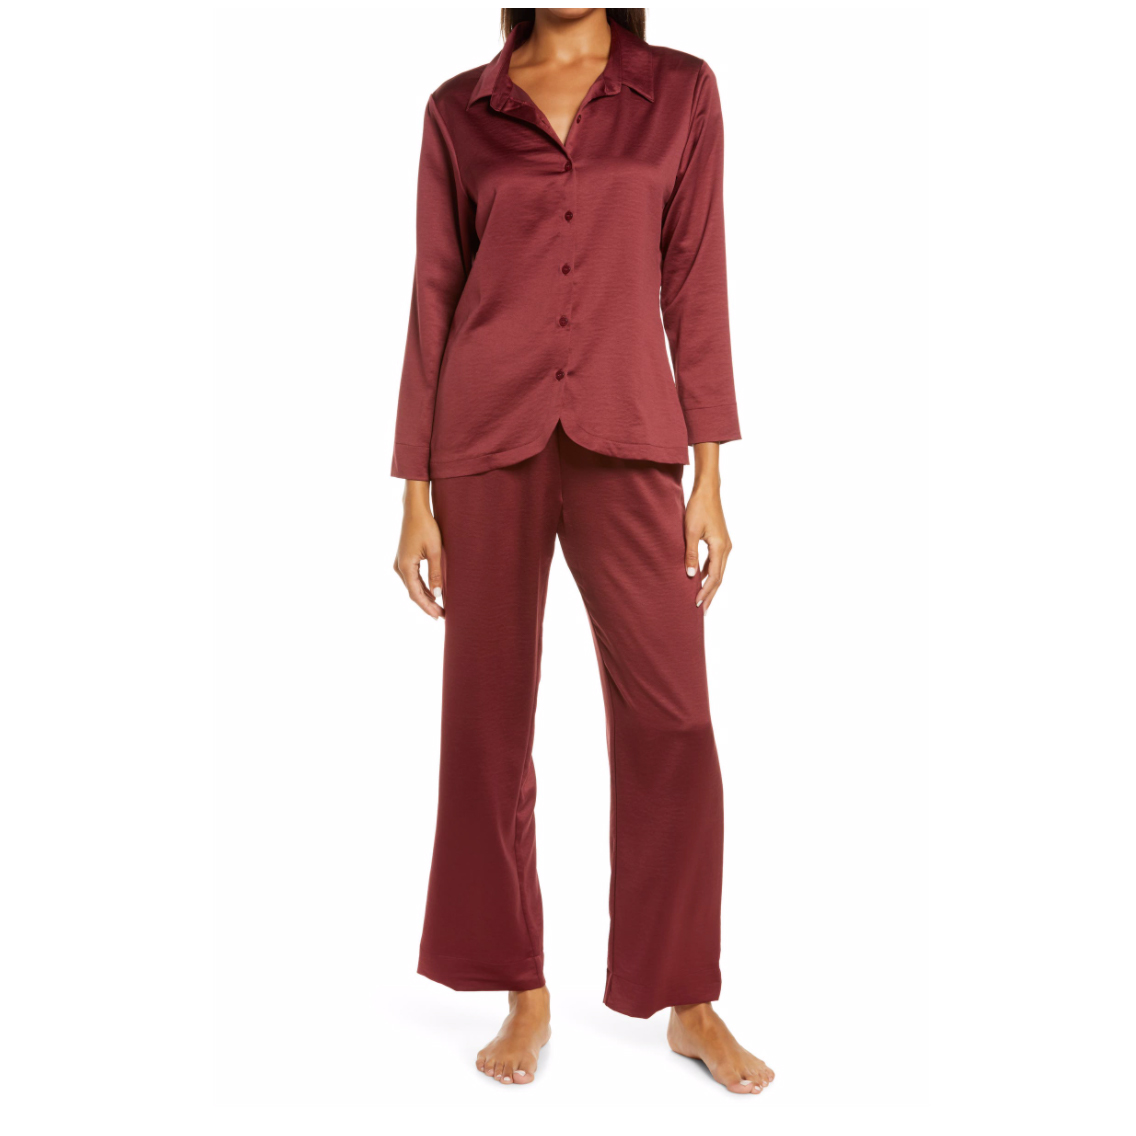 Nordstrom satin pajamas New Year's Eve outfit